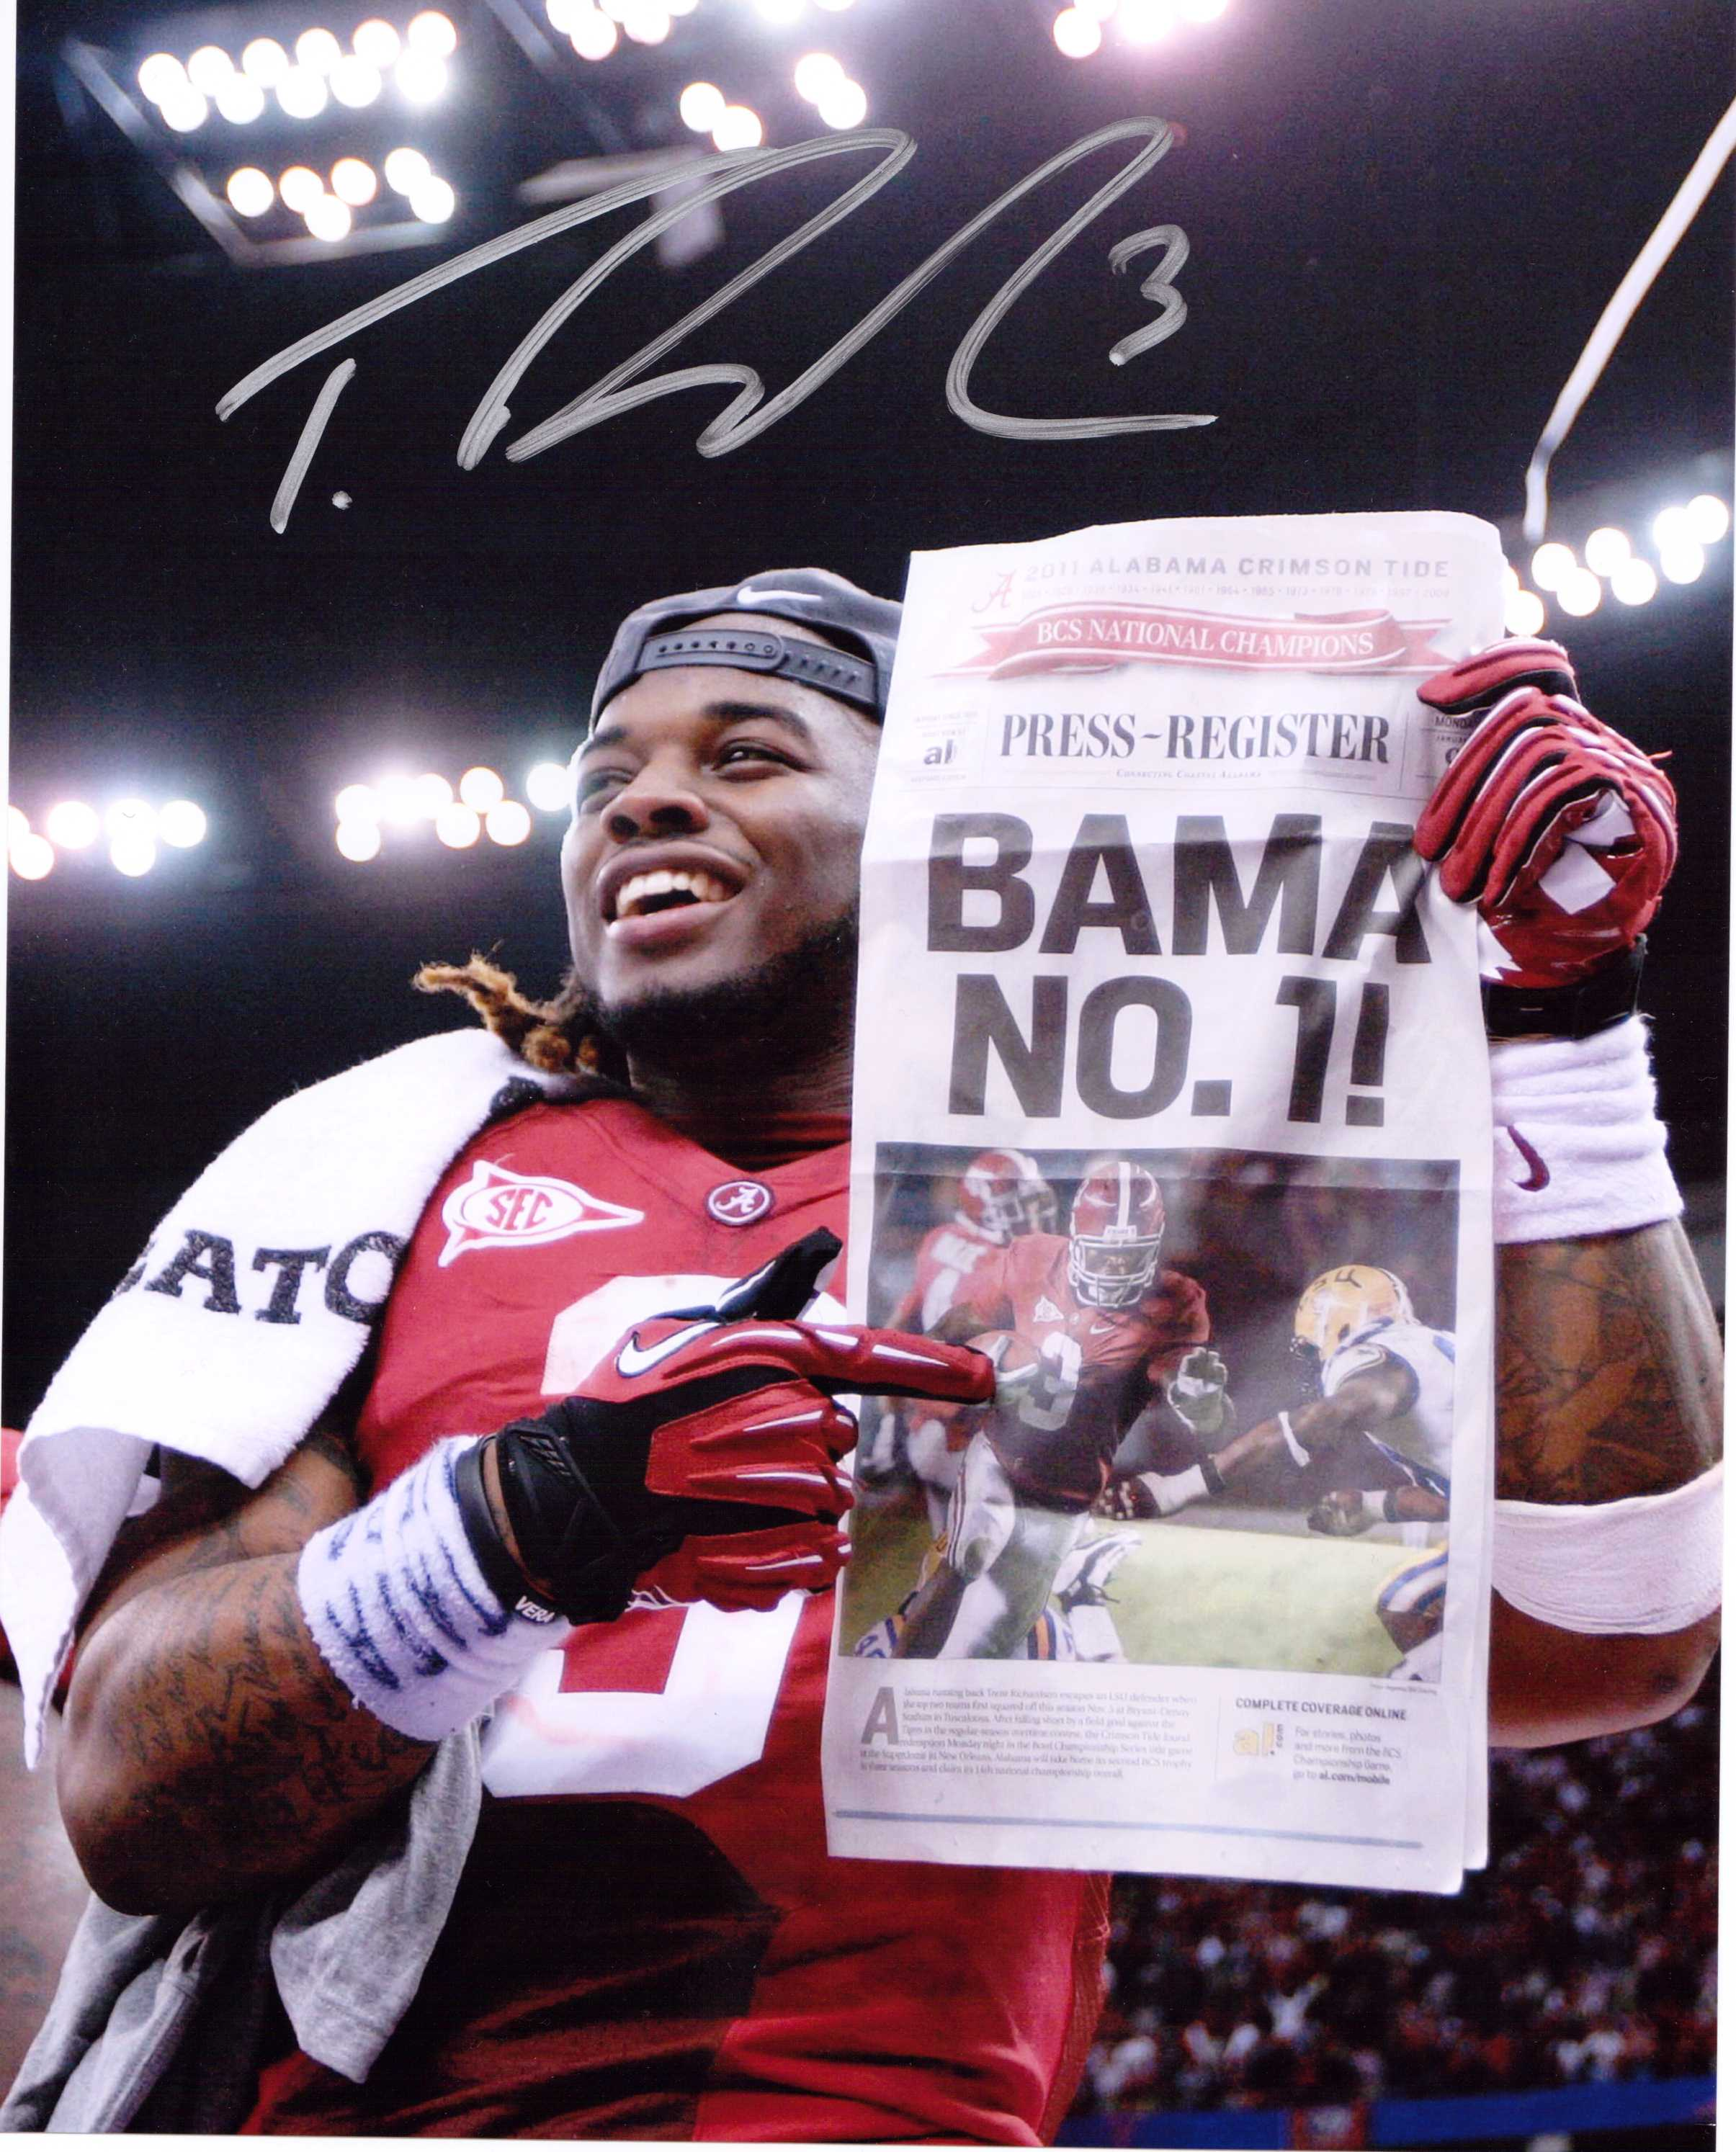 TRENT RICHARDSON SIGNED 8X10 PHOTO NATIONAL CHAMPIONSHIP CELEBRATION